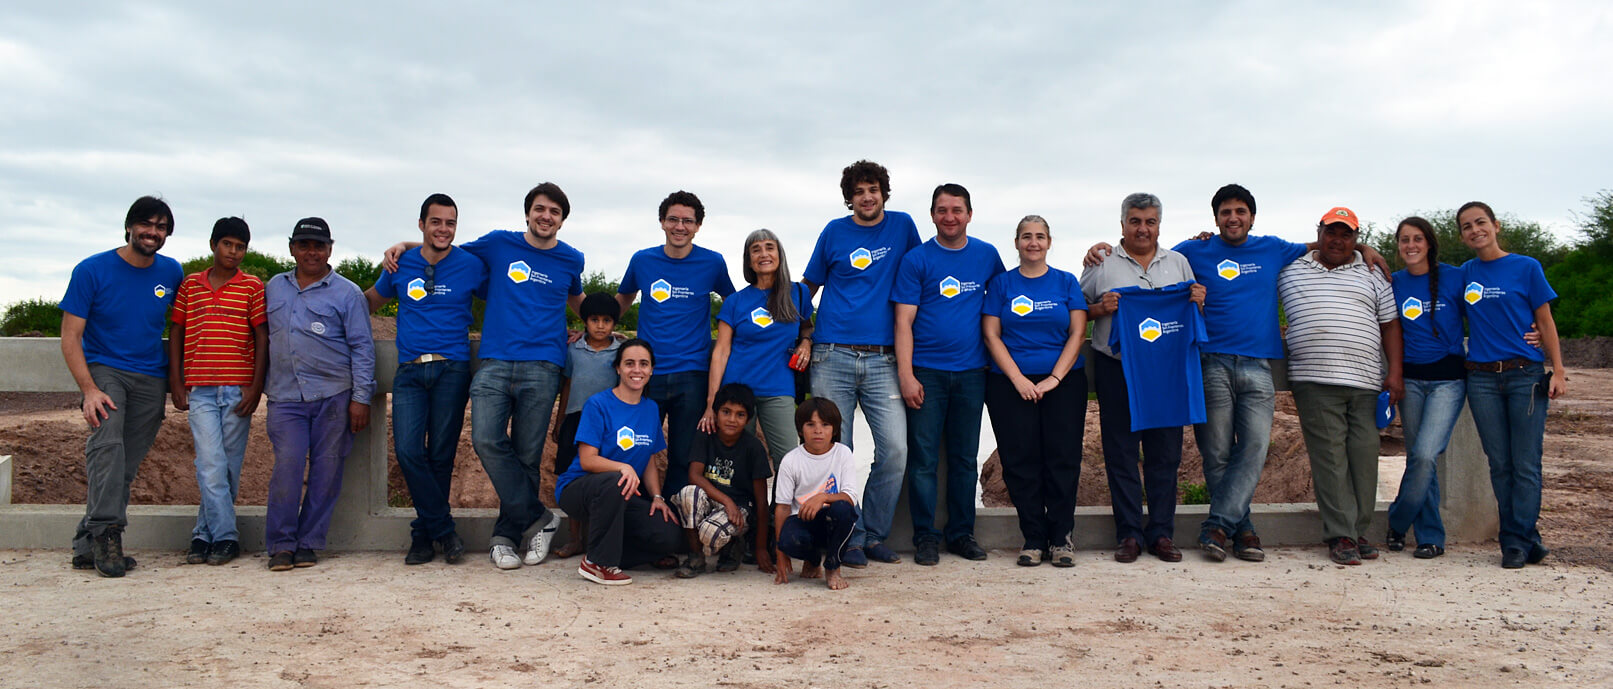 ISF - Equipo